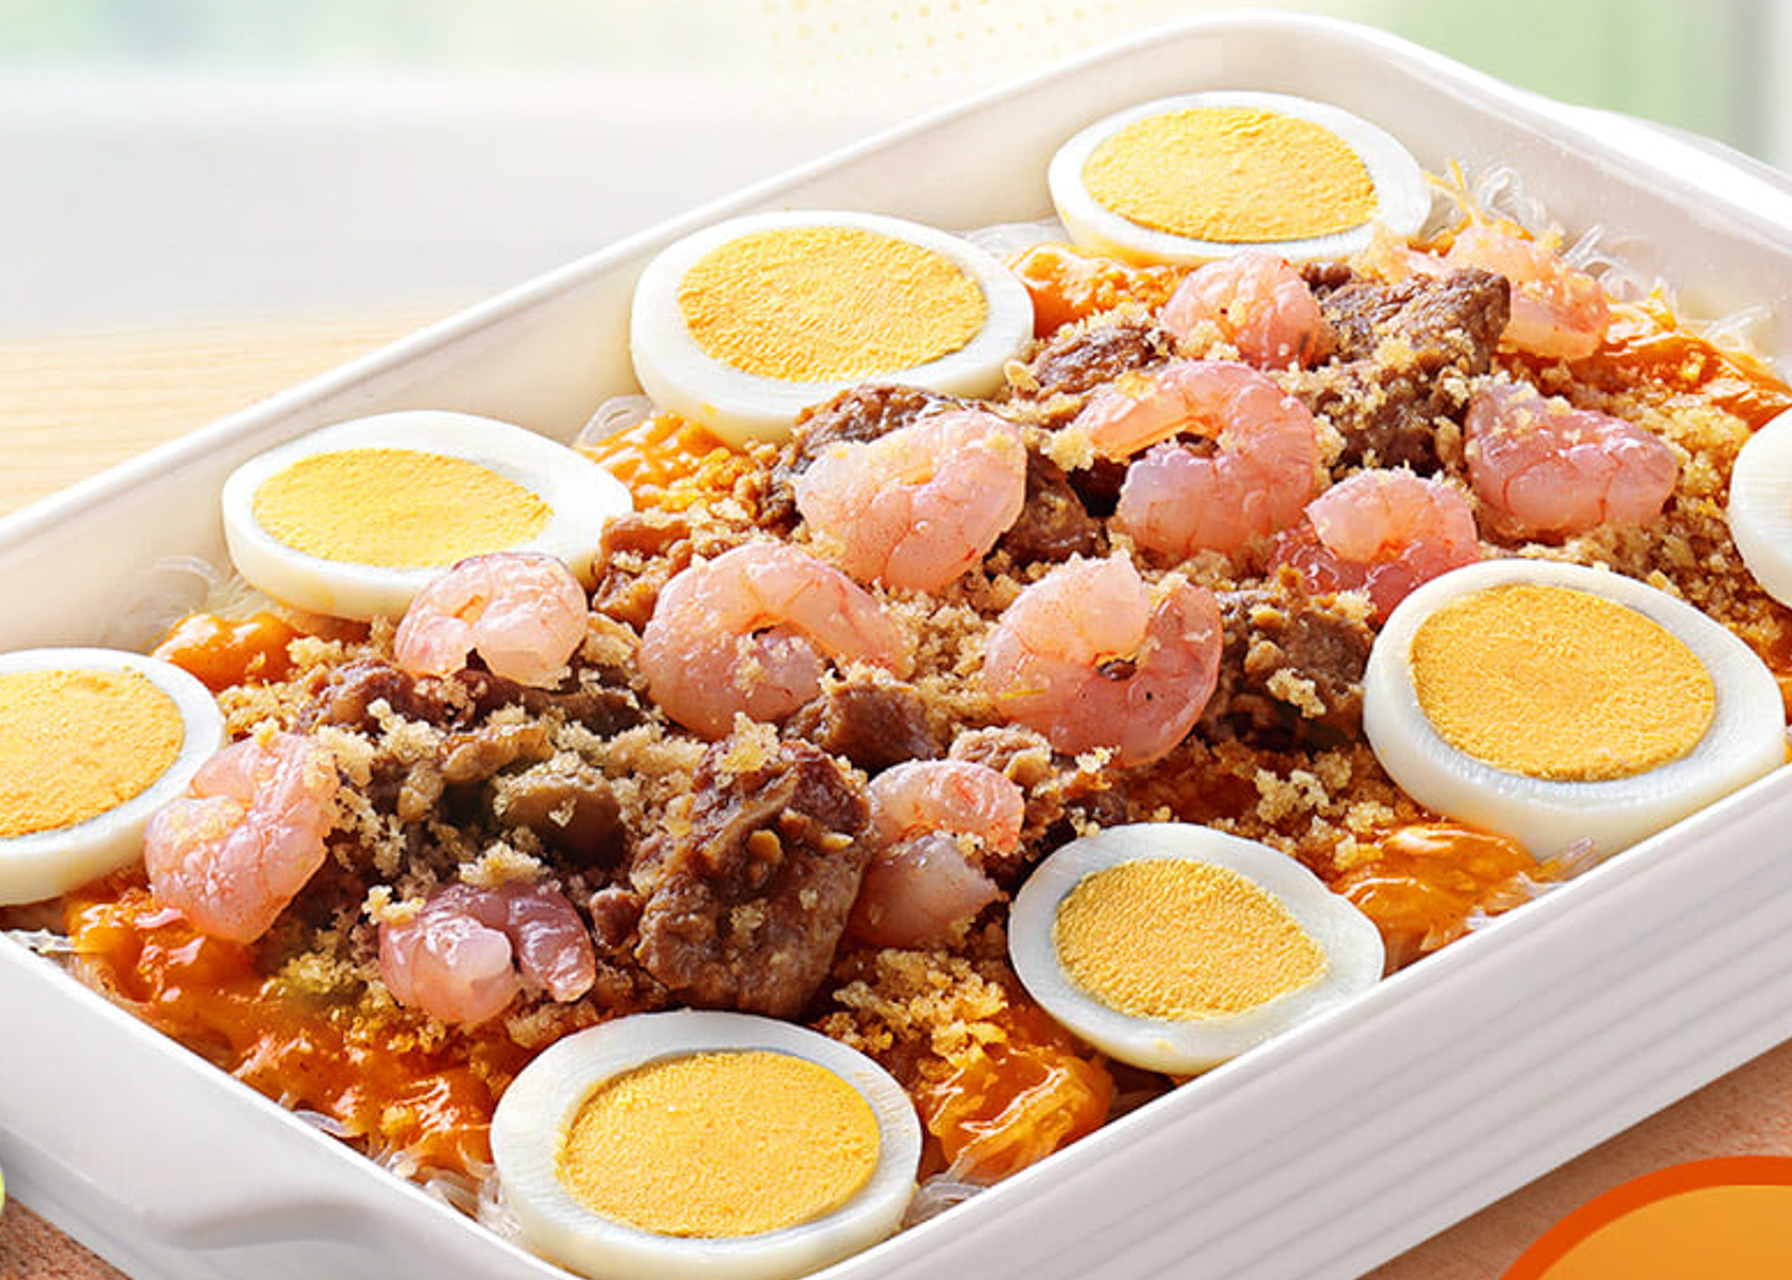 Jollibee Now Has Palabok Family Pan That's Available for Delivery!